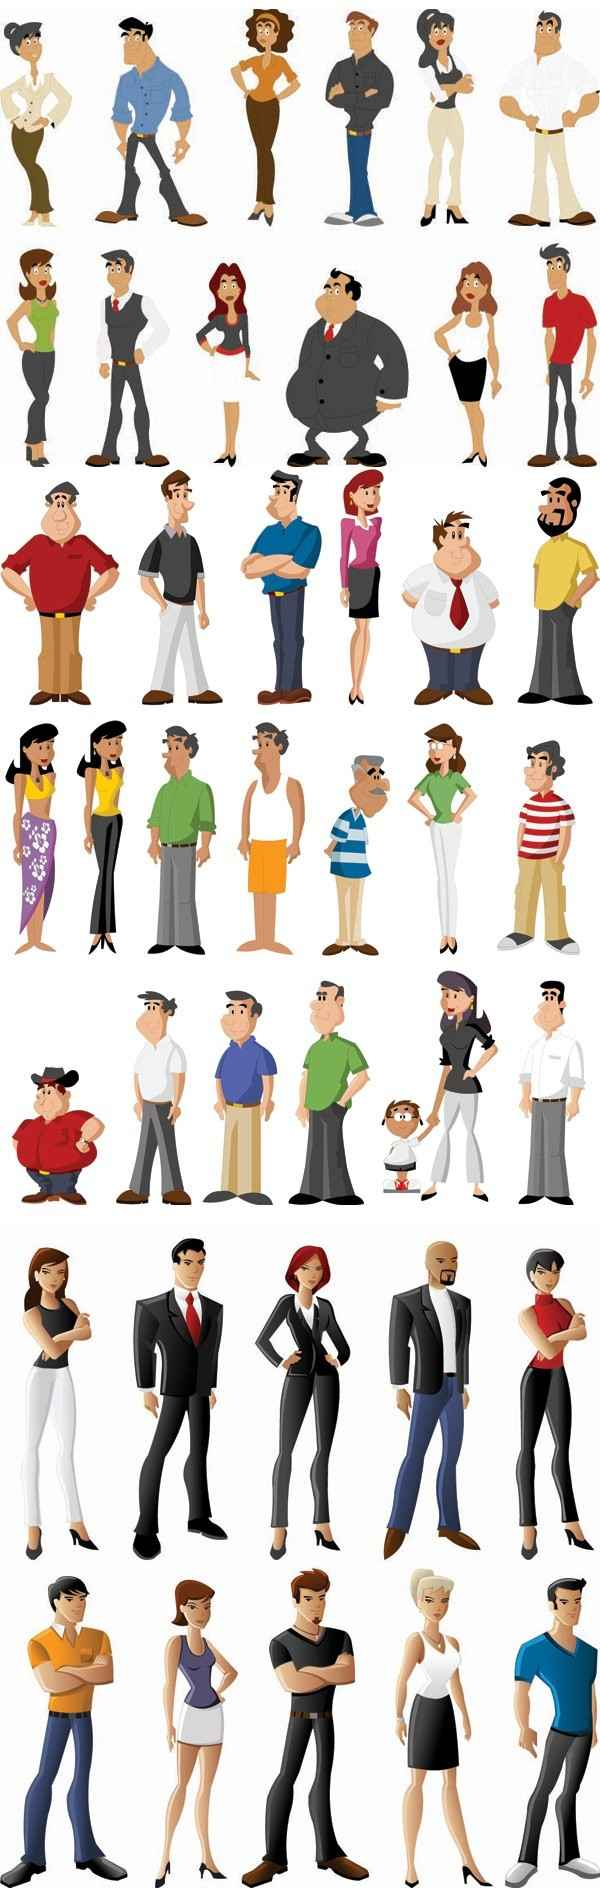 all kinds of cartoon characters